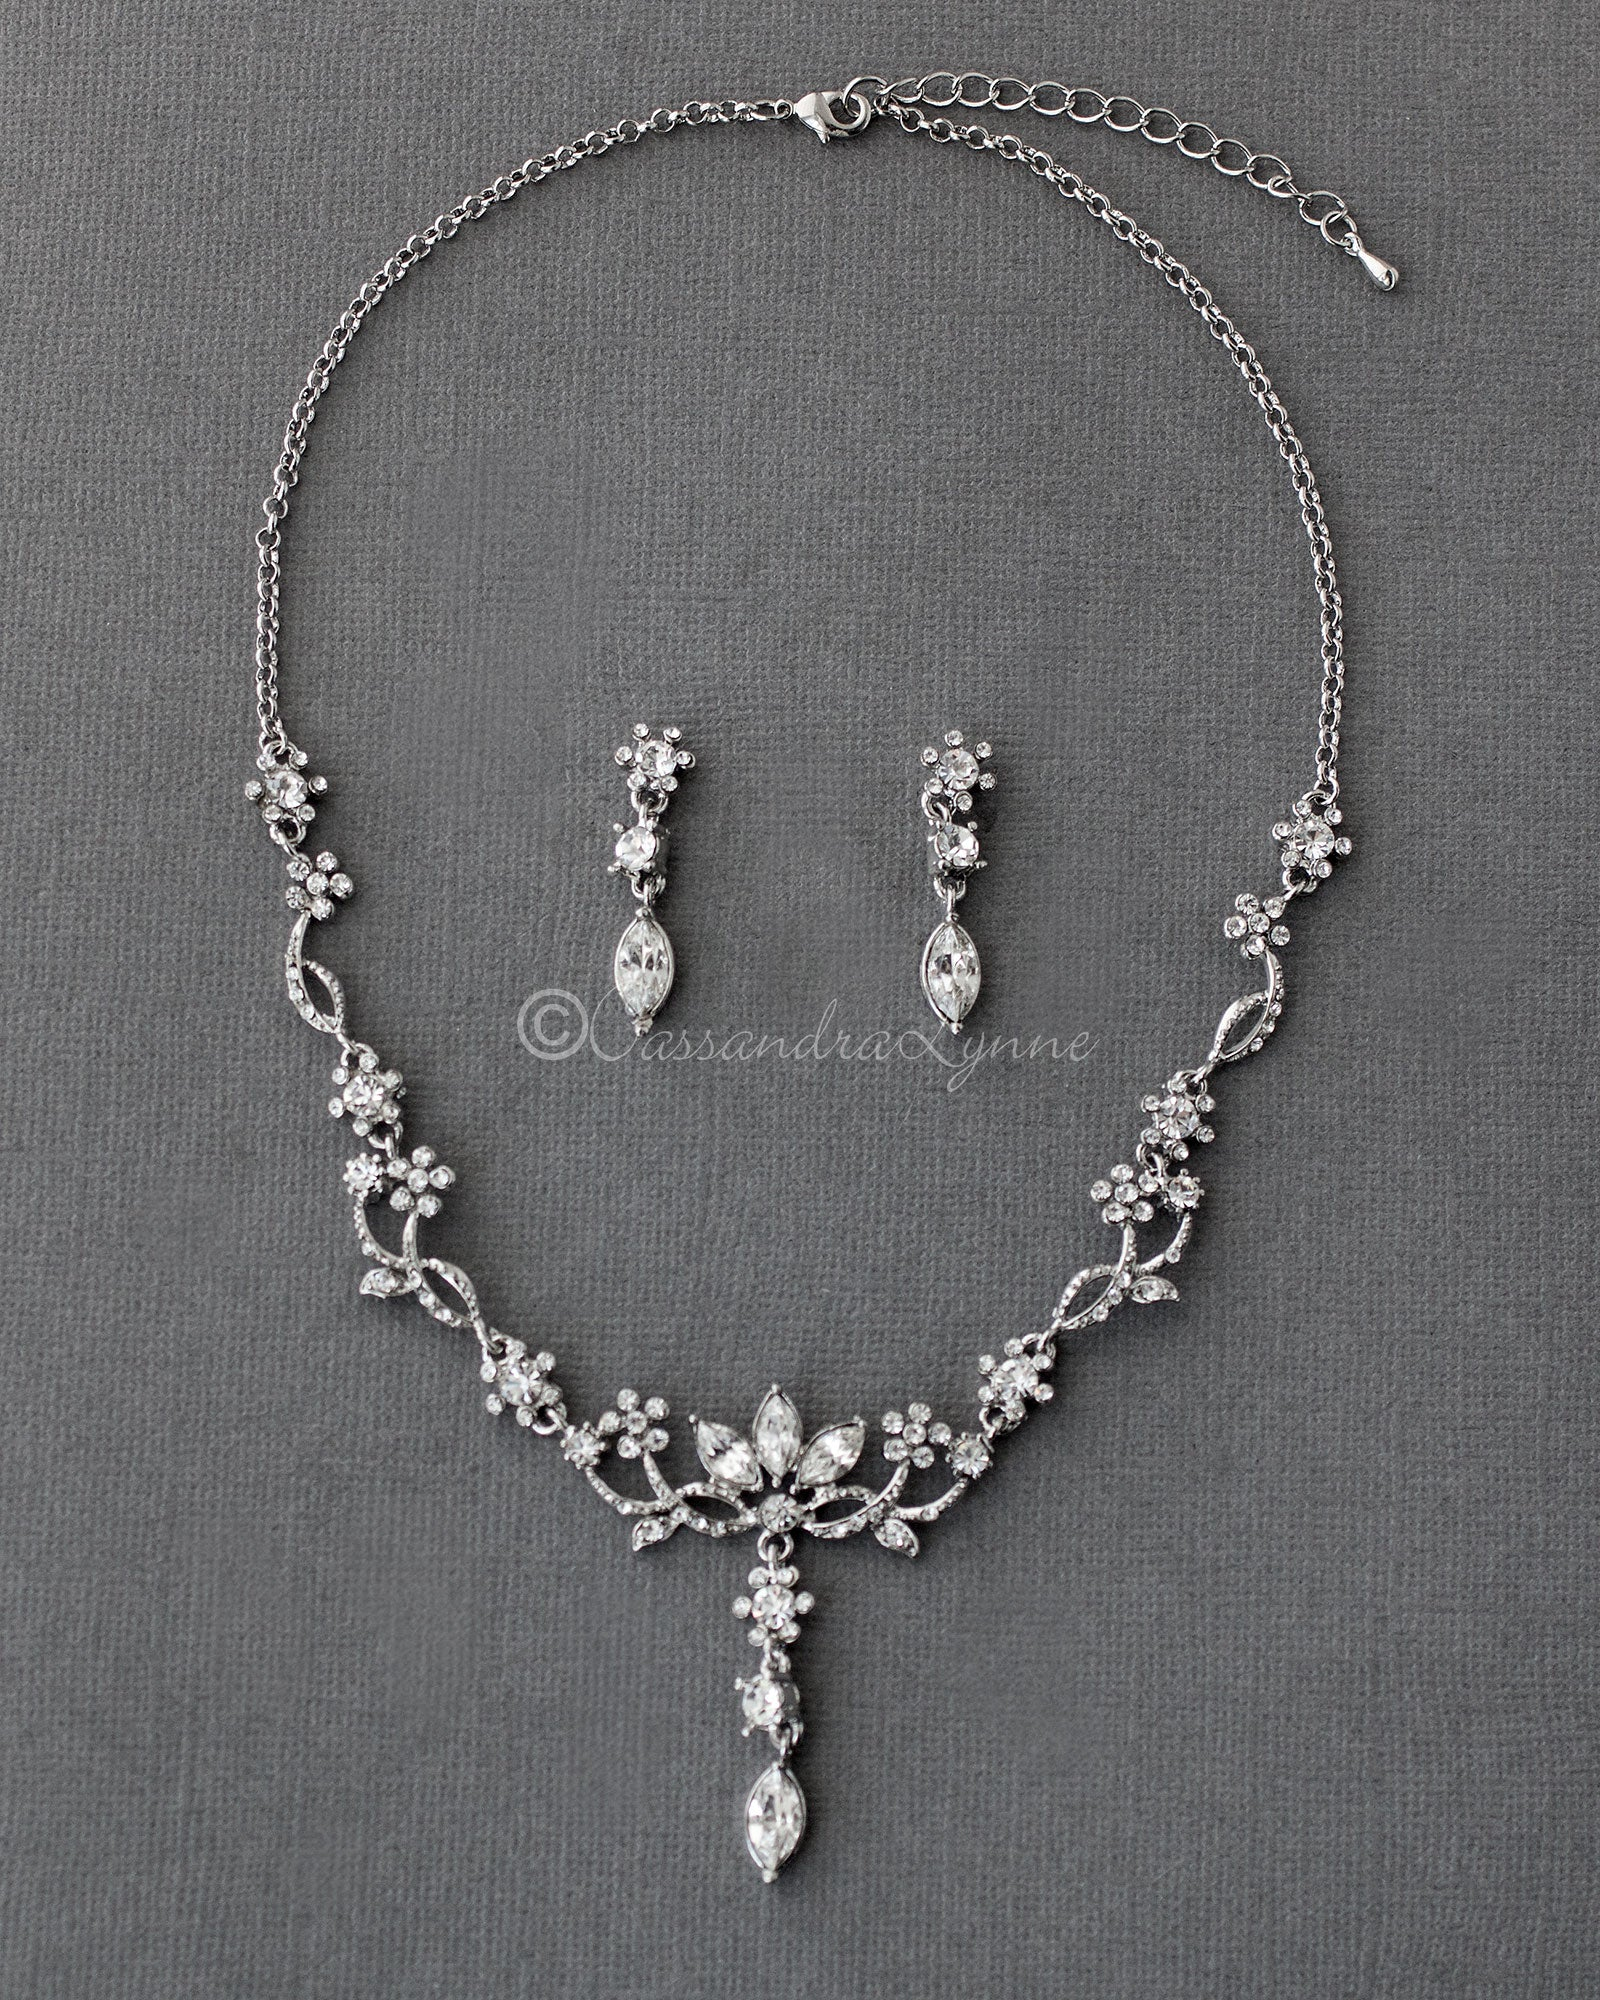 Antique Silver Flower Vine Necklace Set